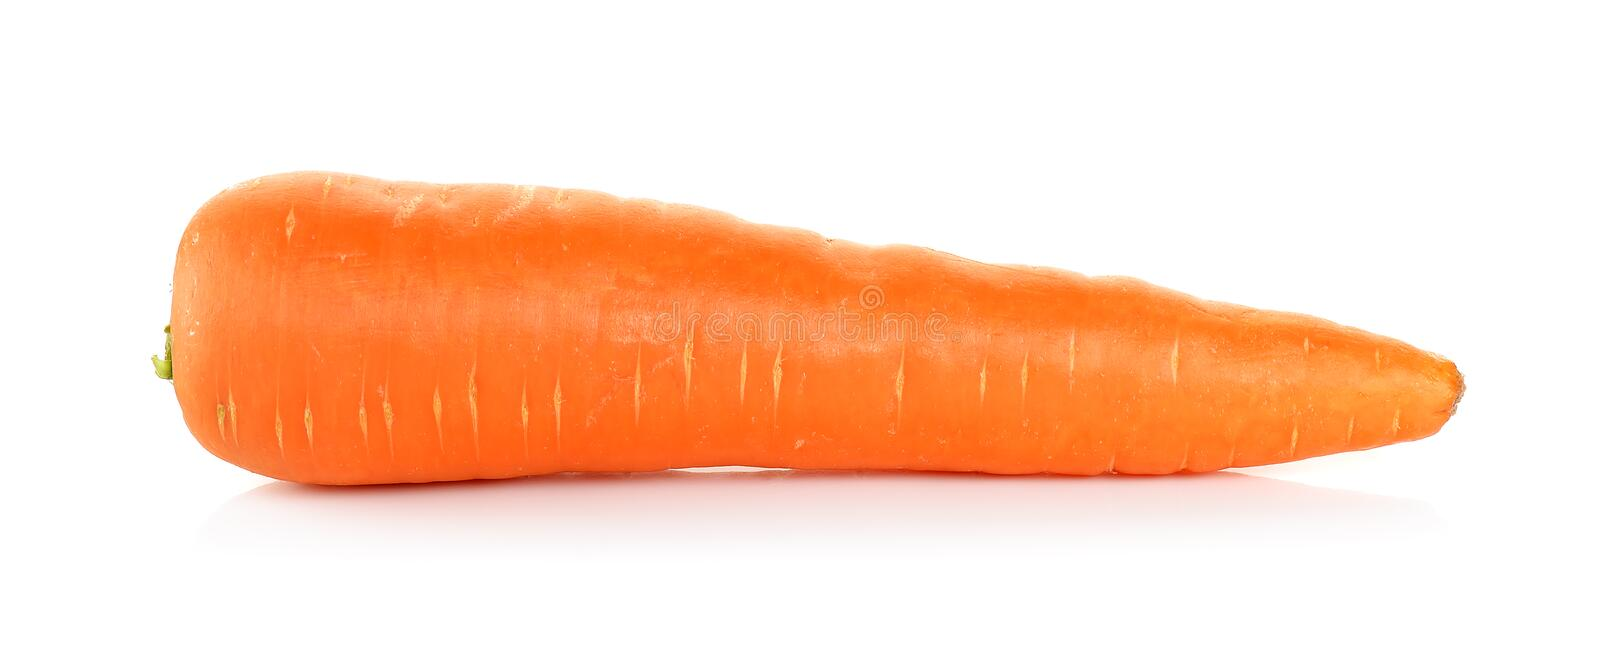 Carrot isolated on the white background.  stock photography